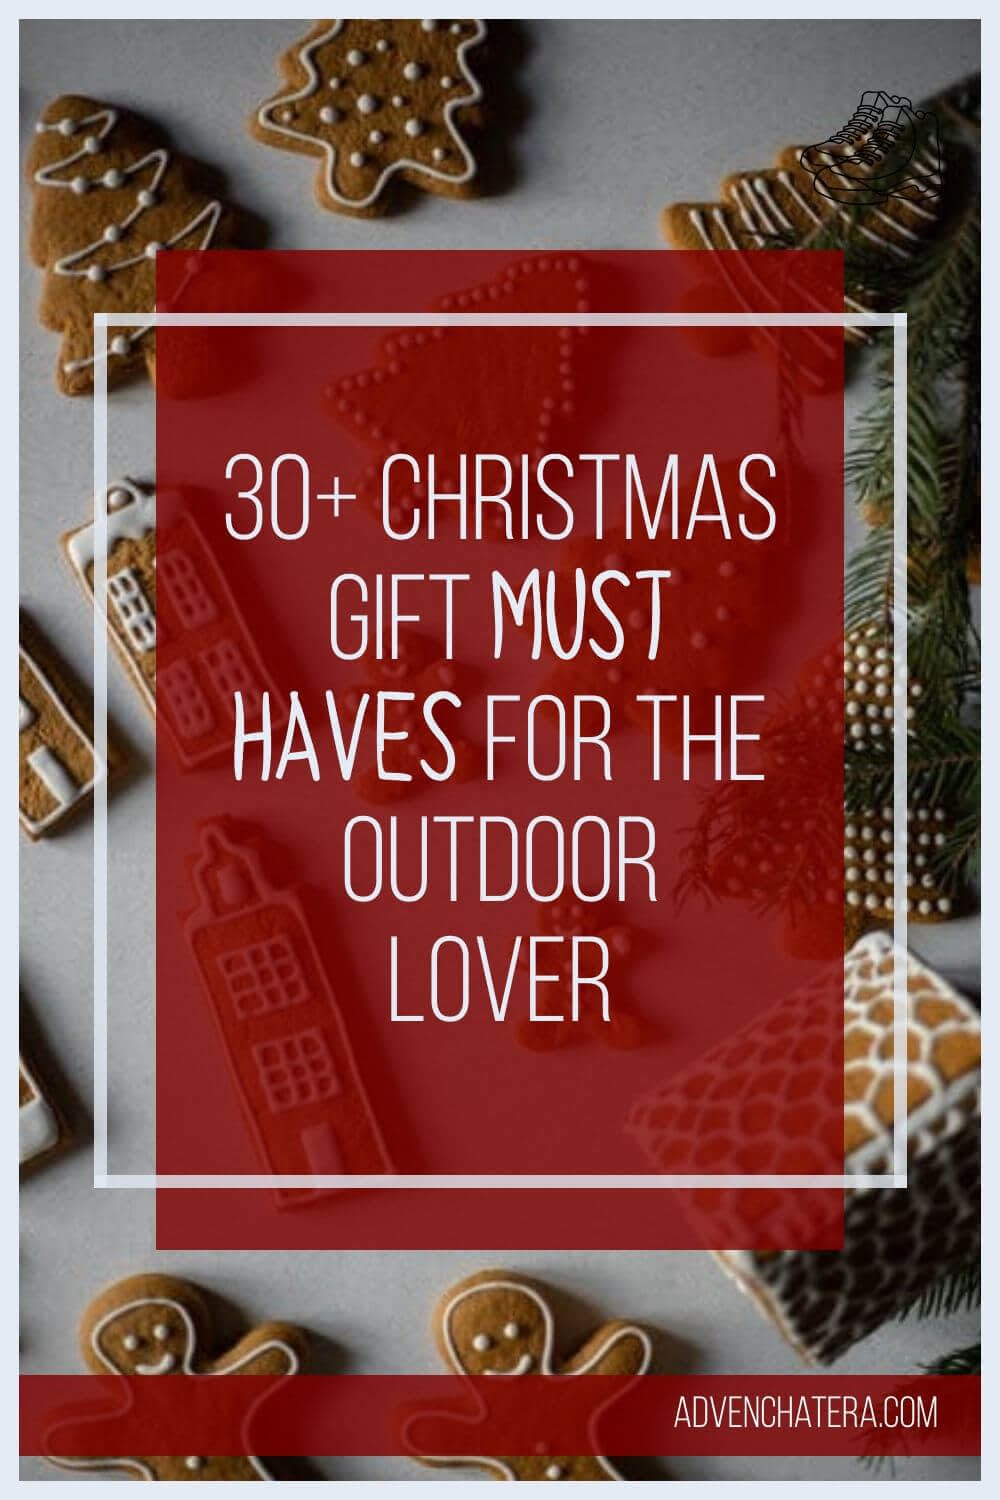 Feeling clueless about what to buy your outdoors-loving friend or family member for Christmas? With so many things to choose from, it can be hard what to decide to buy someone for the best holiday of the year! I made it easy by curating a list of fun outdoor gear for different budgets . Your adventurous loved one will appreciate you forever! | Christmas Gift List | Hiking Gear List | Holiday Gift List | Outdoor Gear List | Bucketlist #christmaswish #christmaslist #giftideas via @advenchatera via @advenchatera